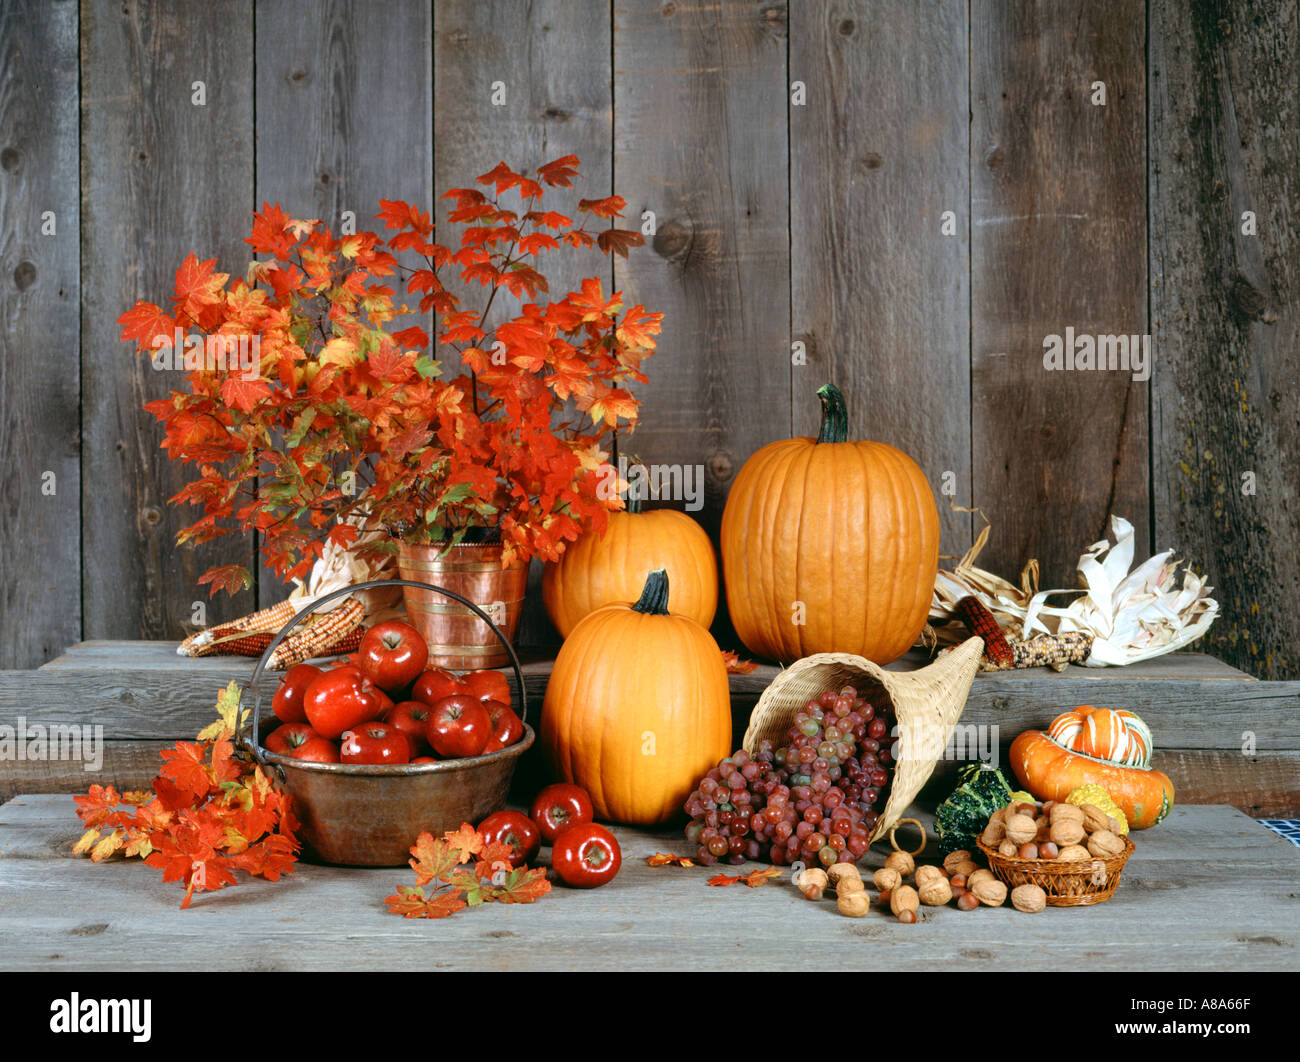 Fall harvest against old wood background - Stock Image